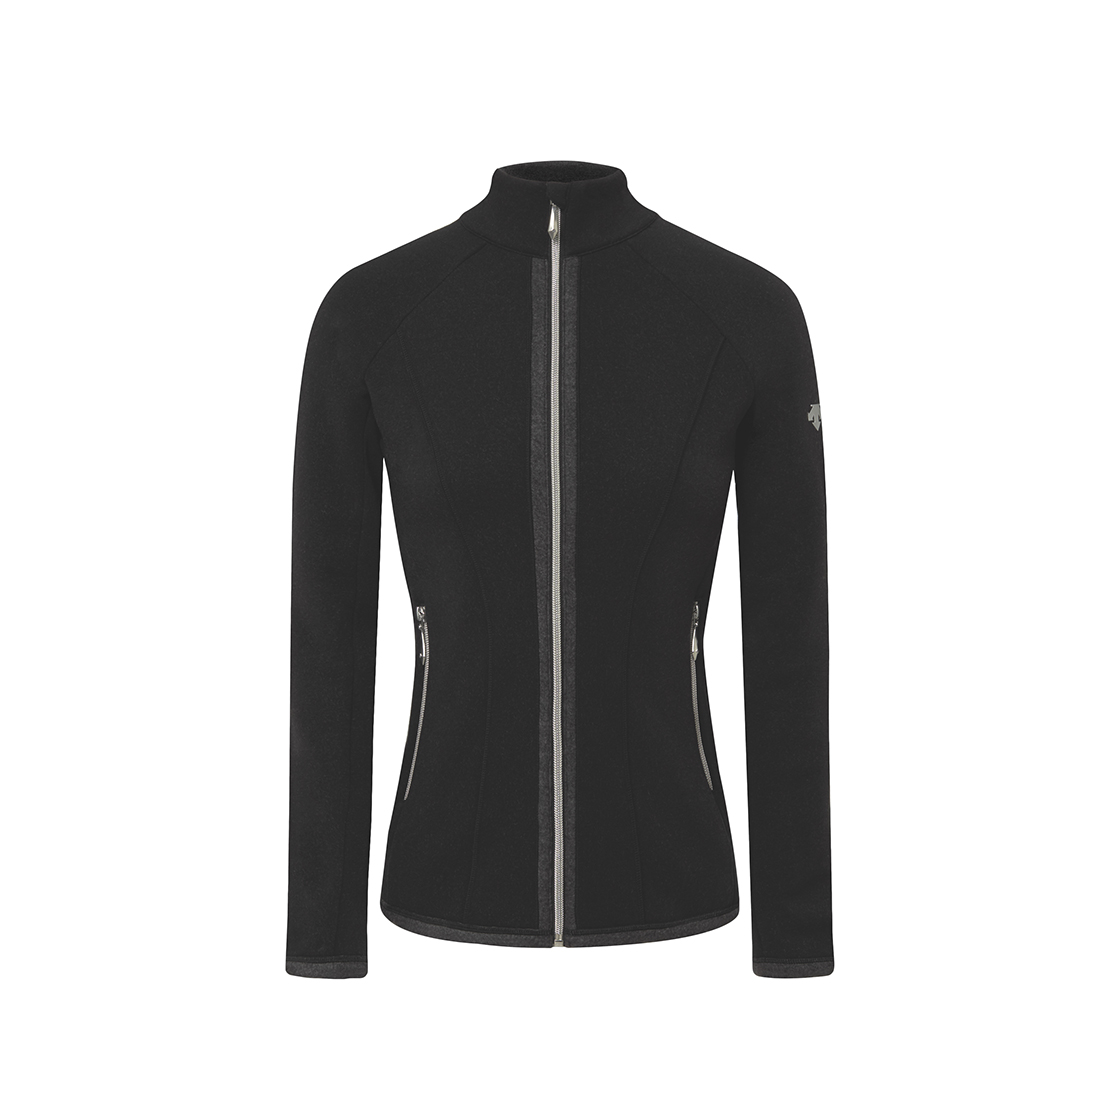 WOMEN'S MIDLAYER JACKET